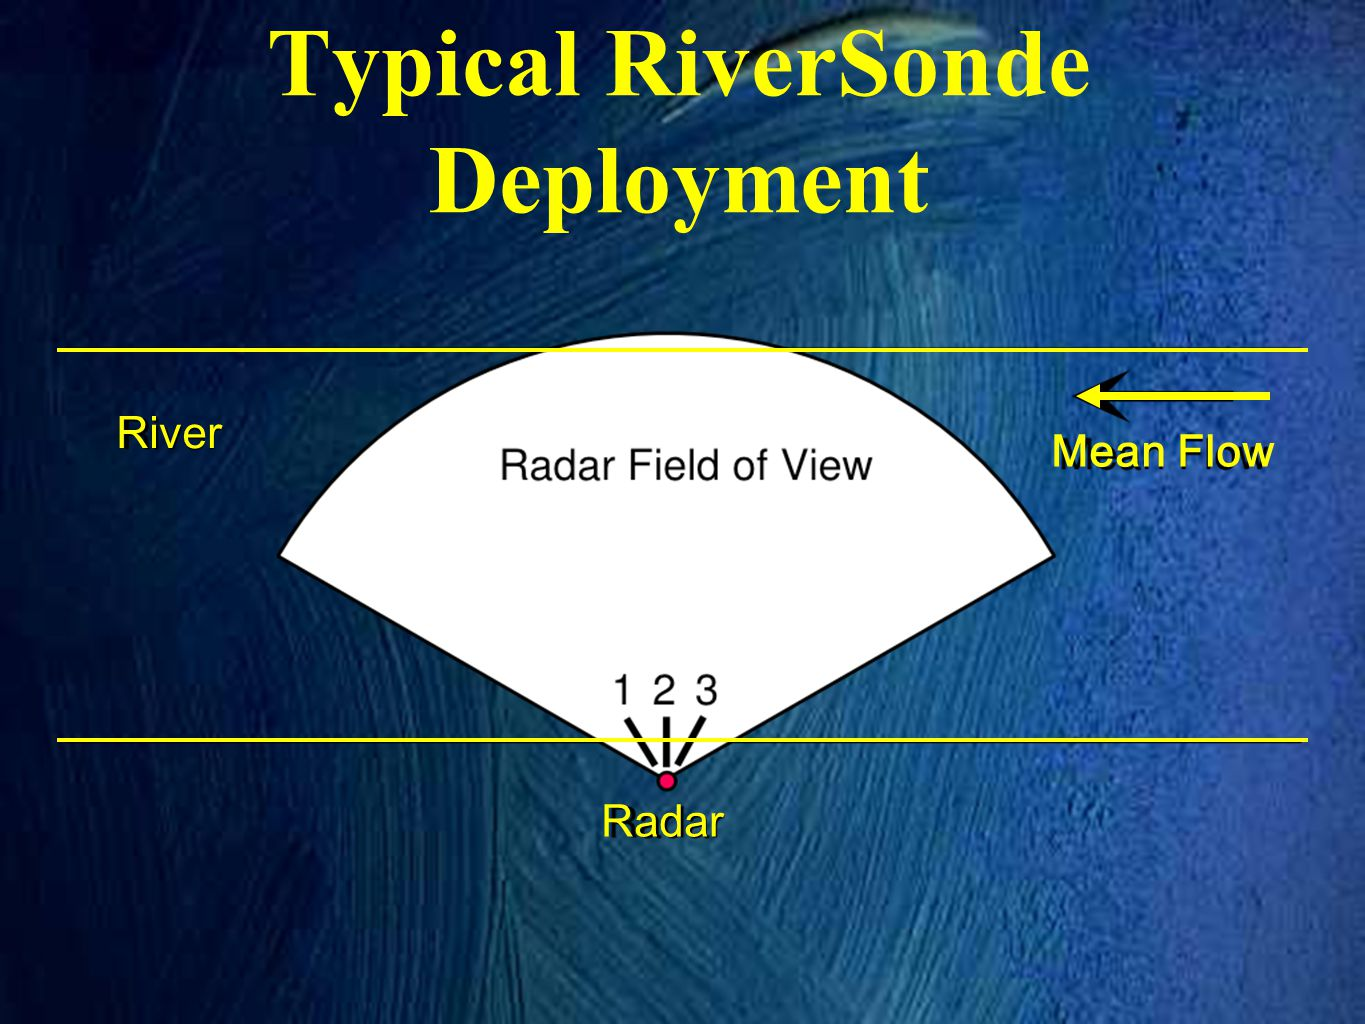 Typical RiverSonde Deployment